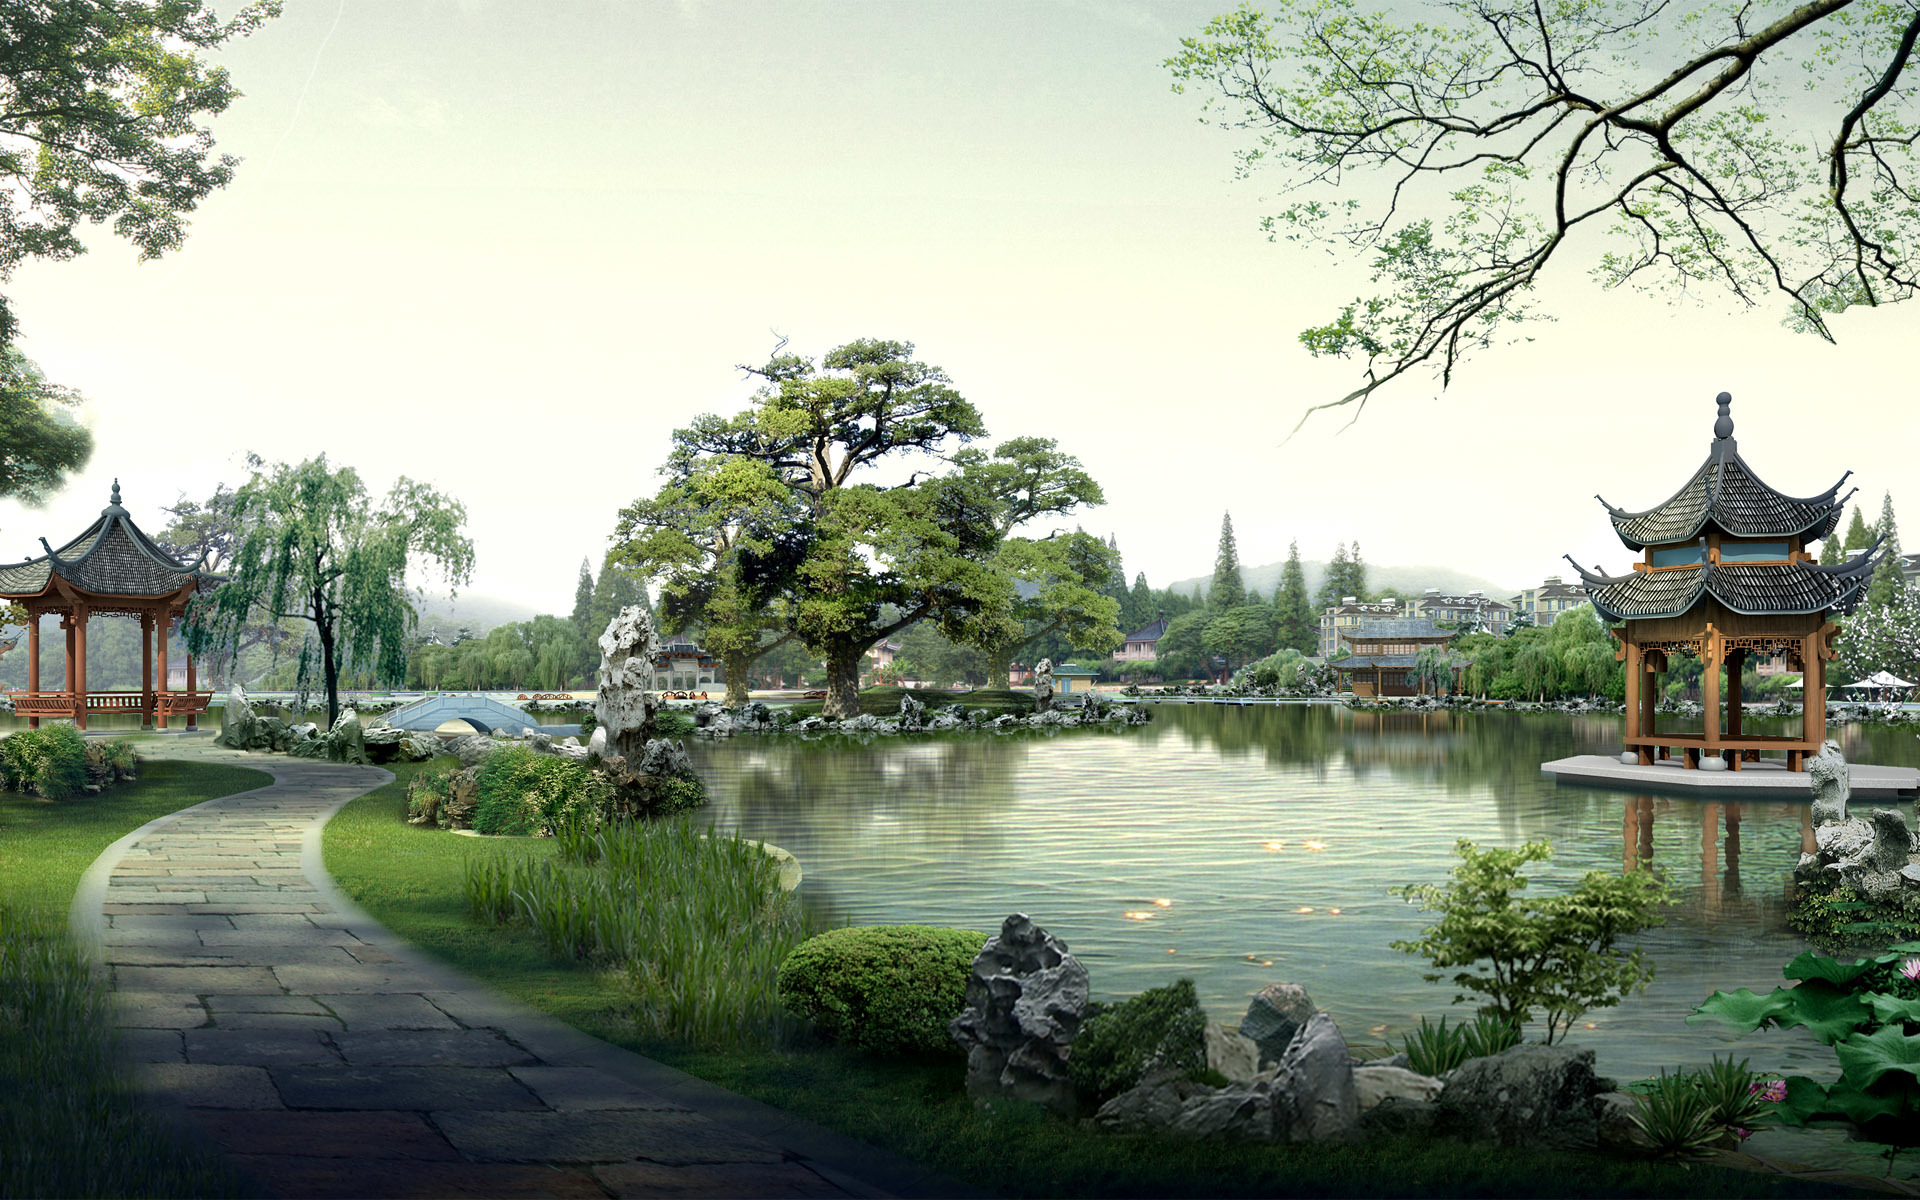 Gardens Photoshop Lake China HD Wallpaper